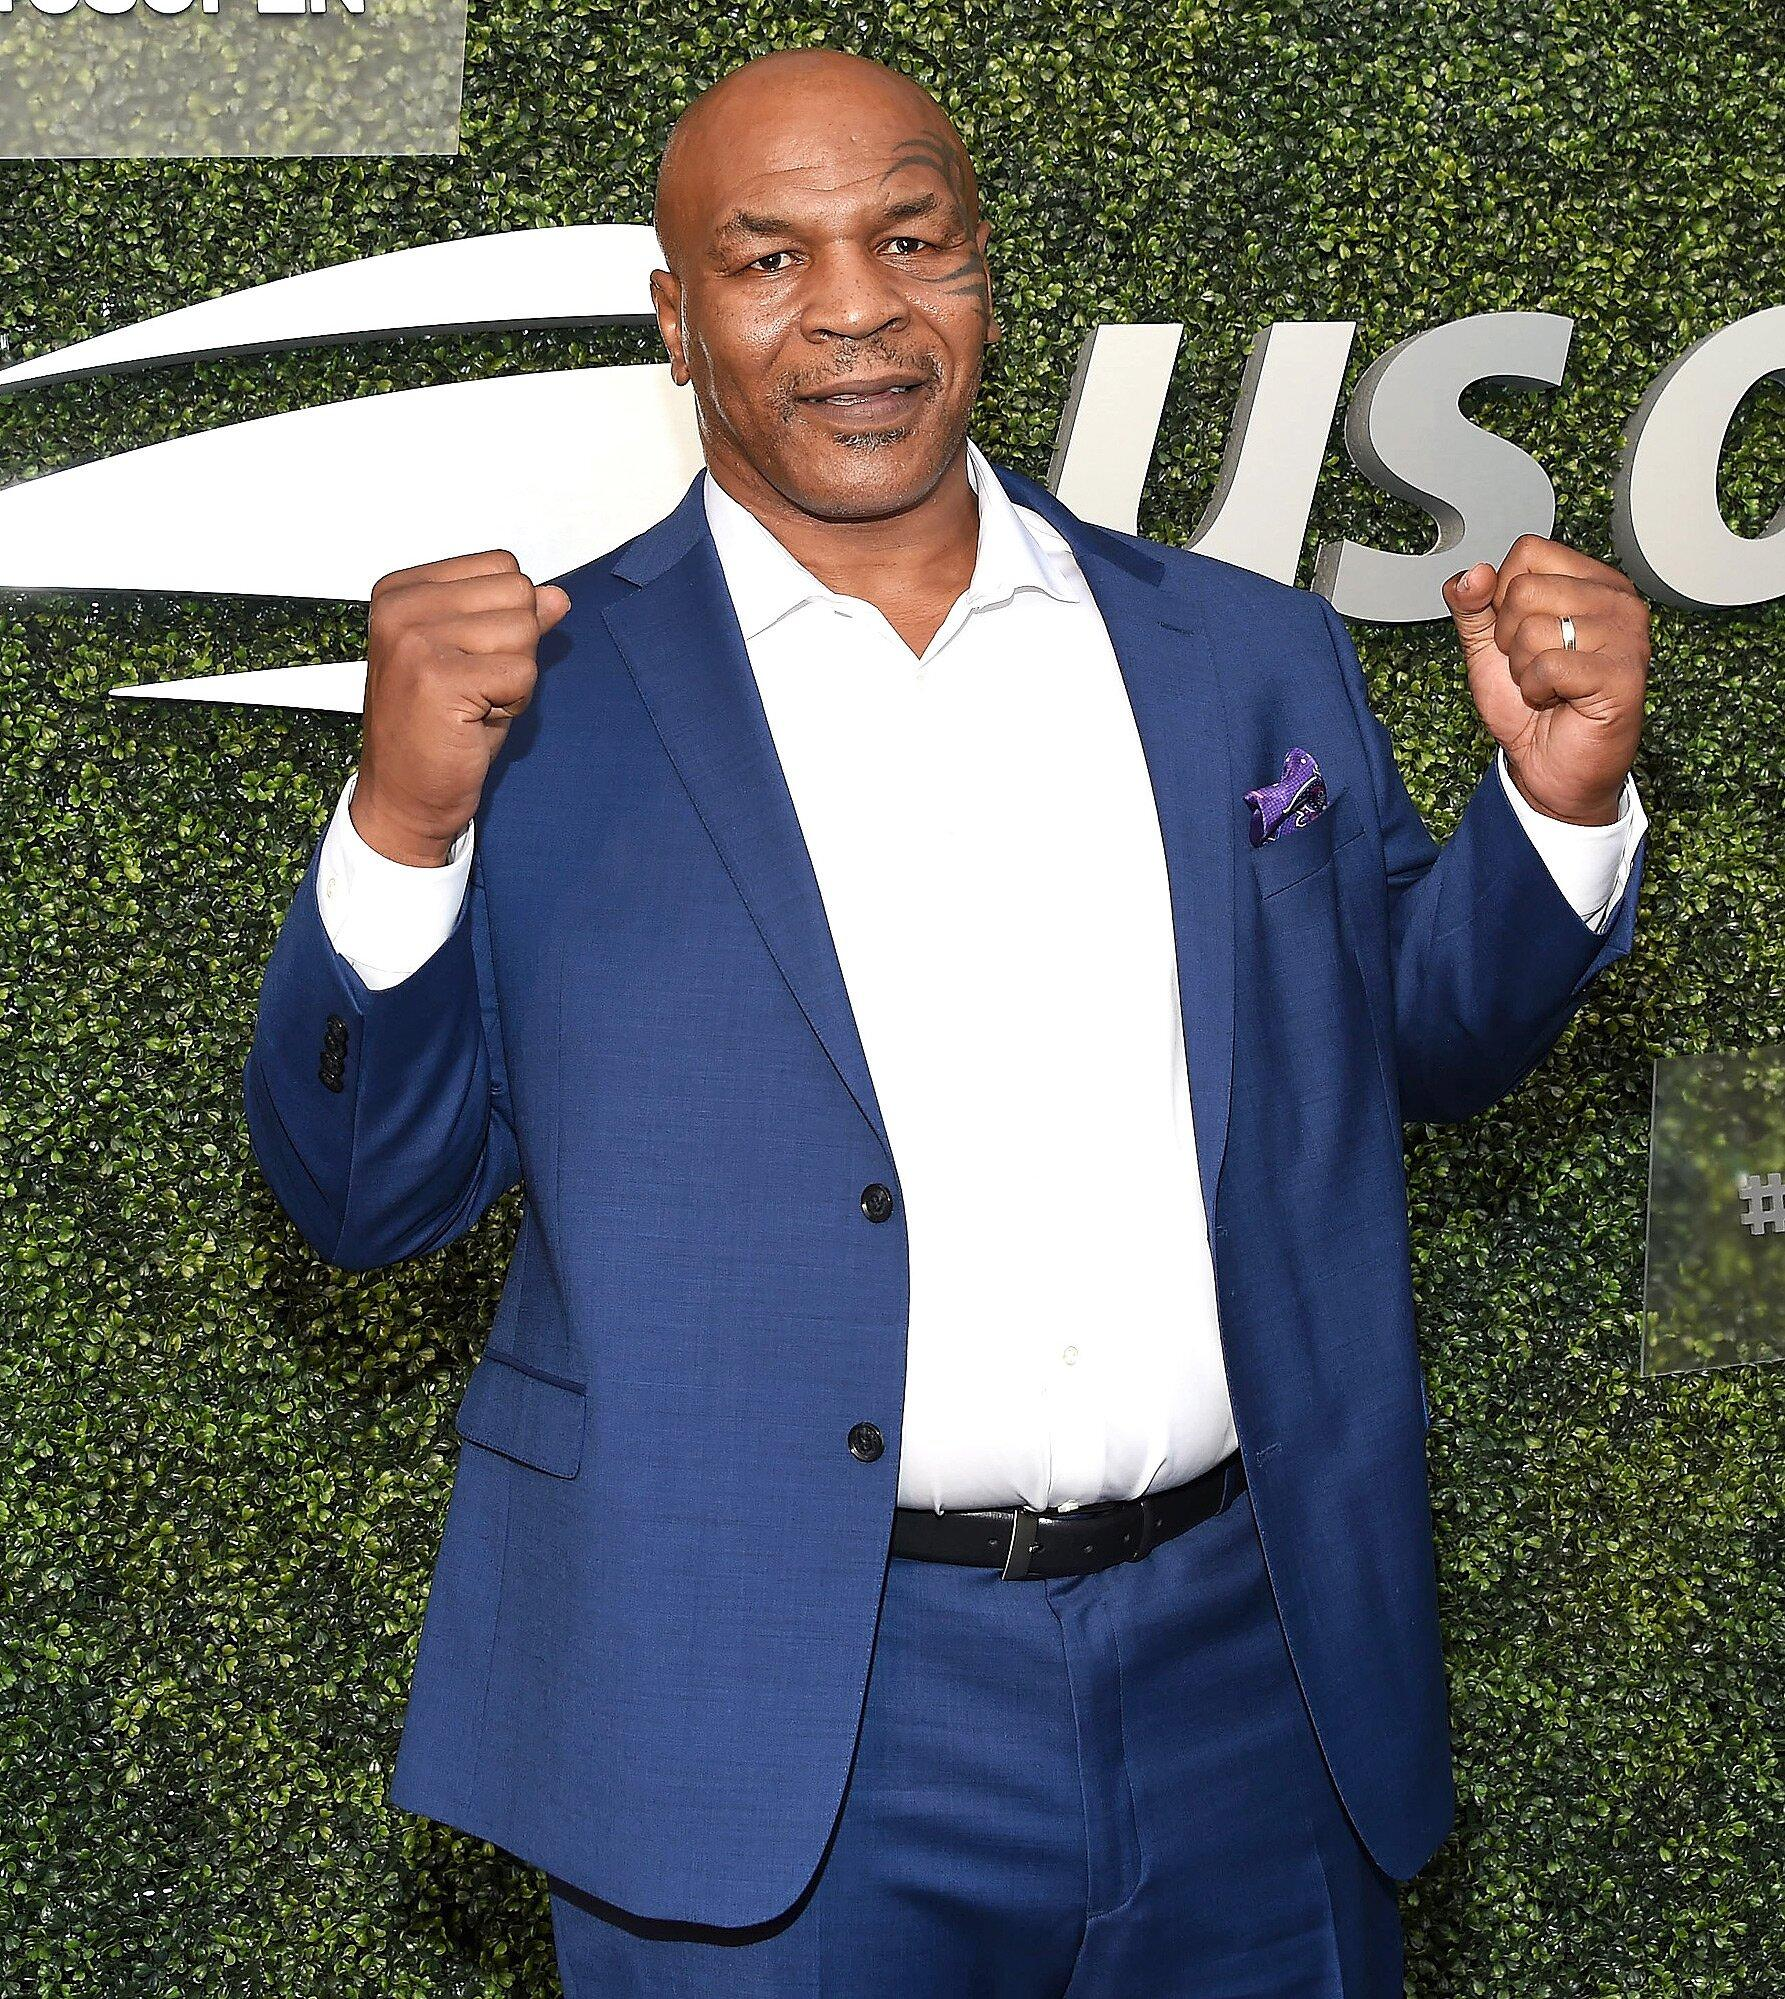 Mike Tyson Offered More Than 20 Million To Fight Again In Single Match